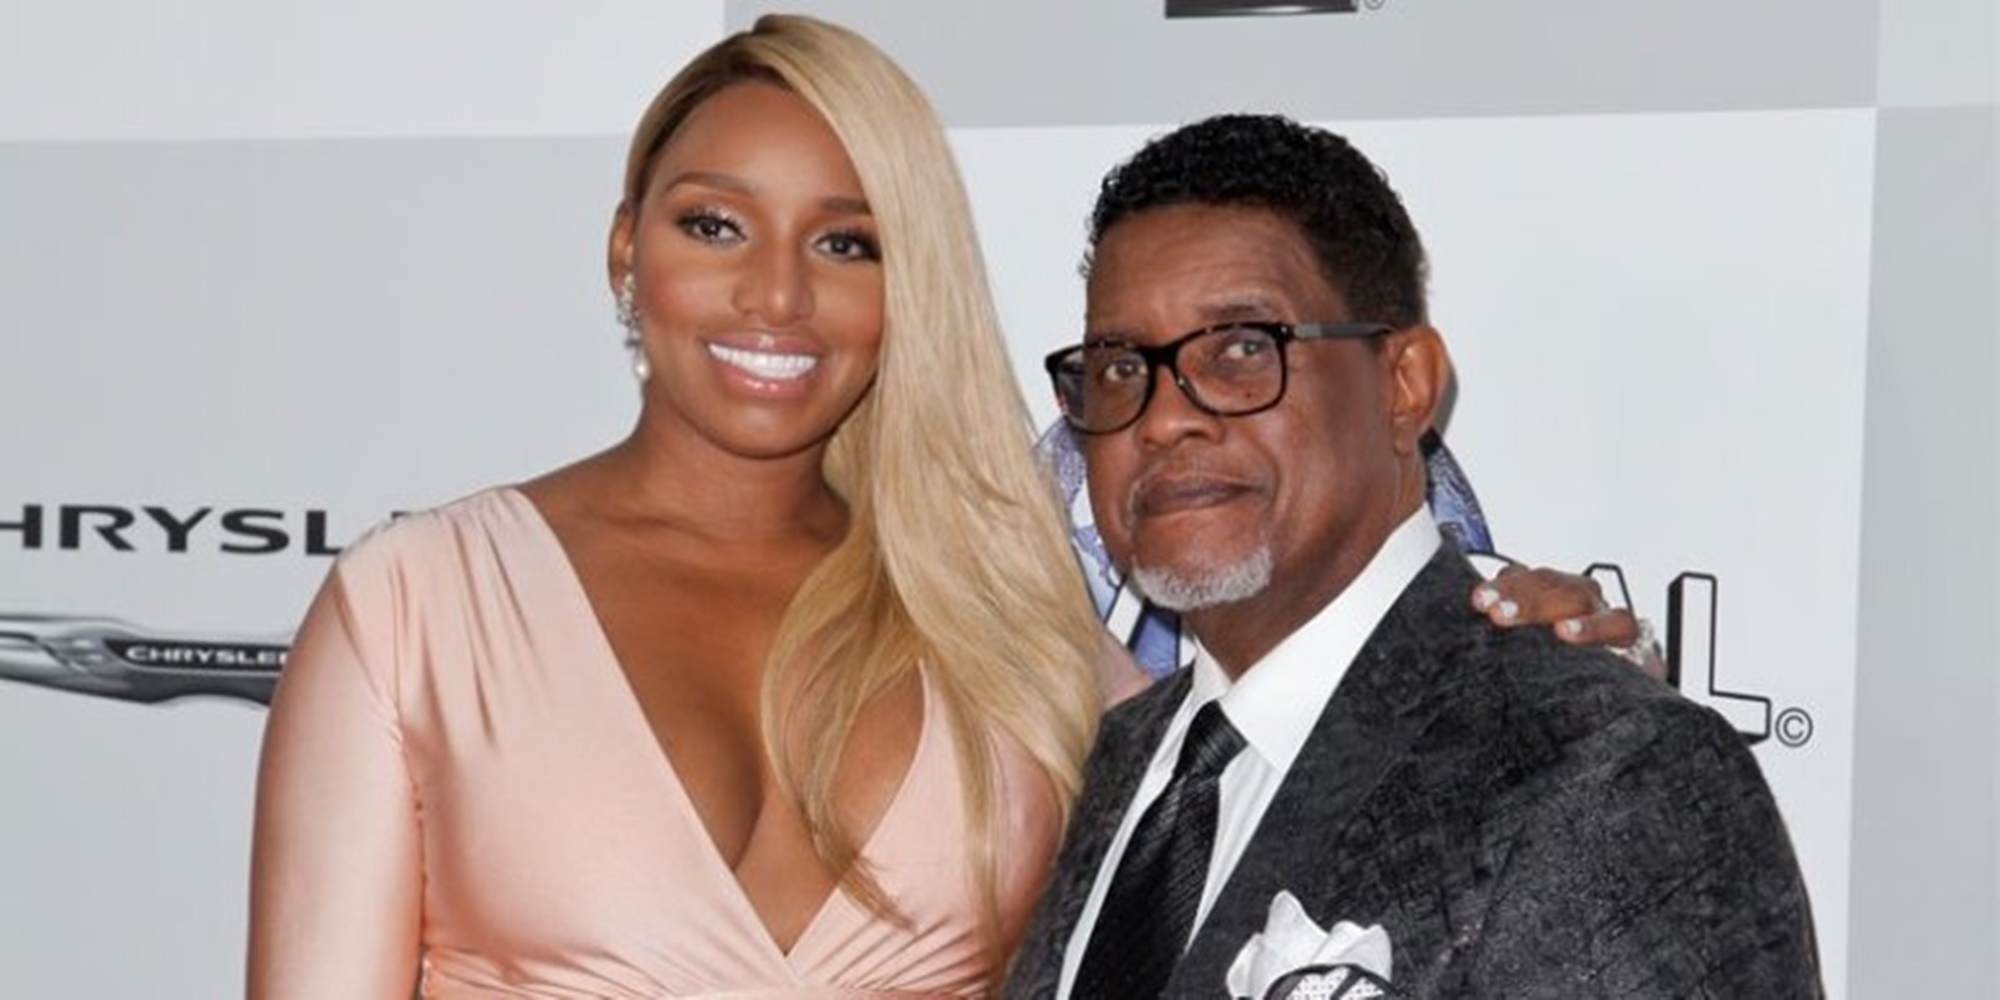 """nene-leakes-gets-real-about-greggs-cheating-issues-on-real-housewives-of-atlanta-since-she-is-unsure-about-their-future-together-divorce-is-a-possibility"""